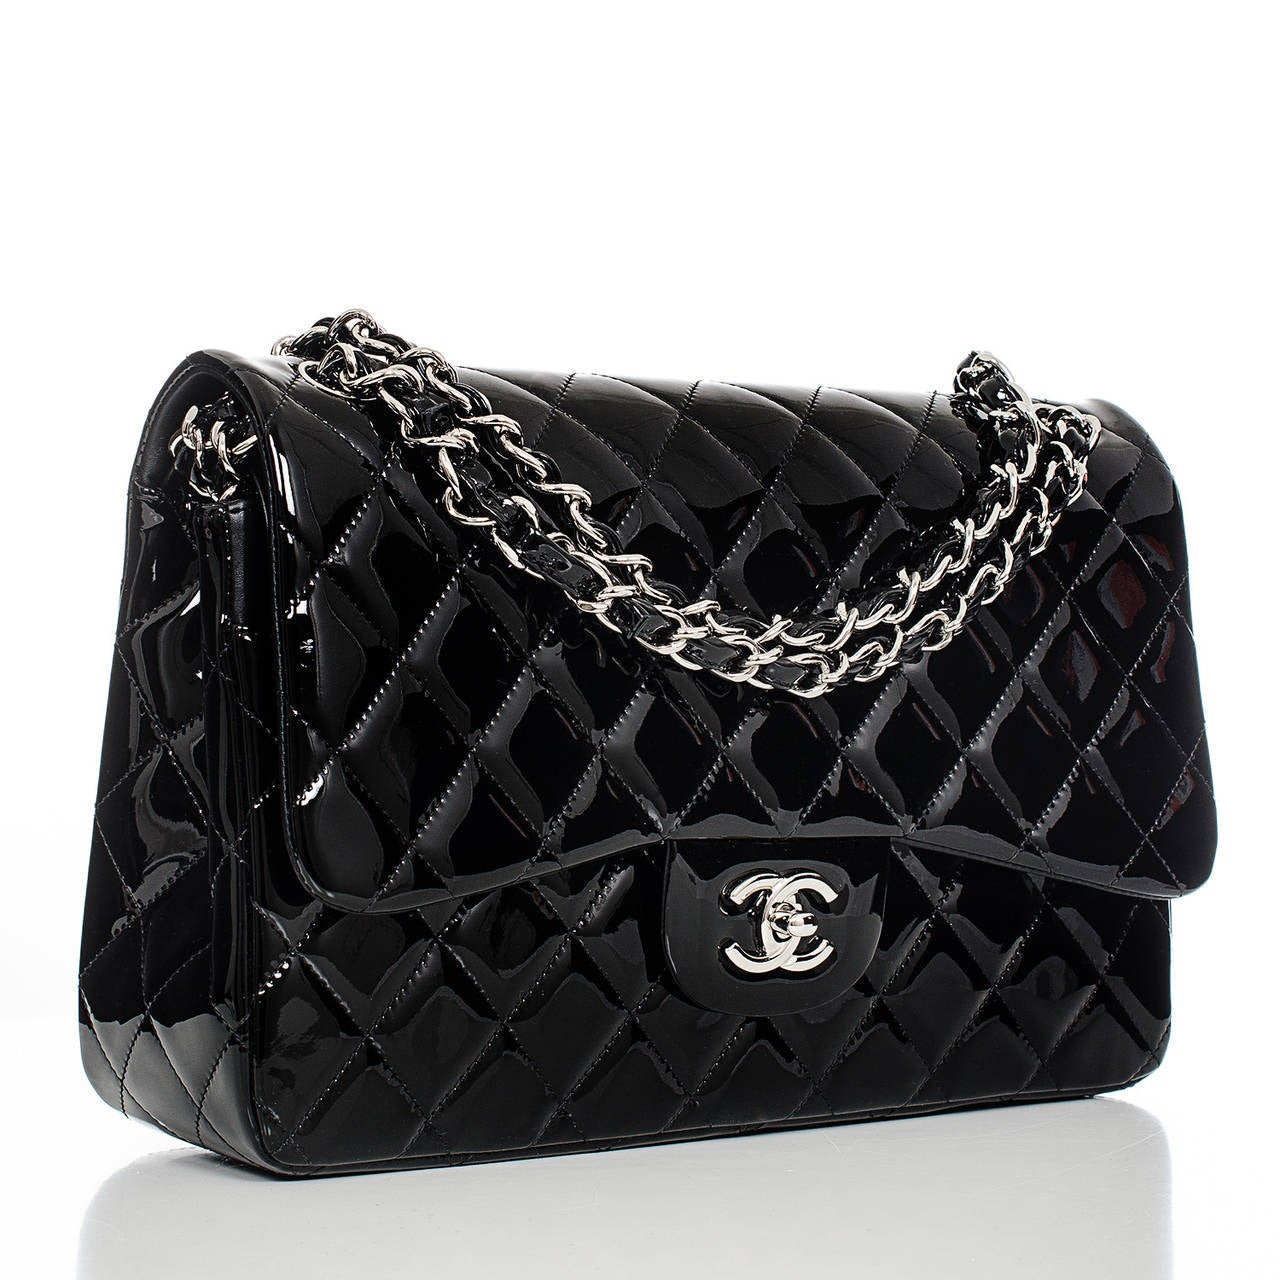 Chanel black Jumbo Classic double flap bag of quilted patent leather with silver tone hardware.